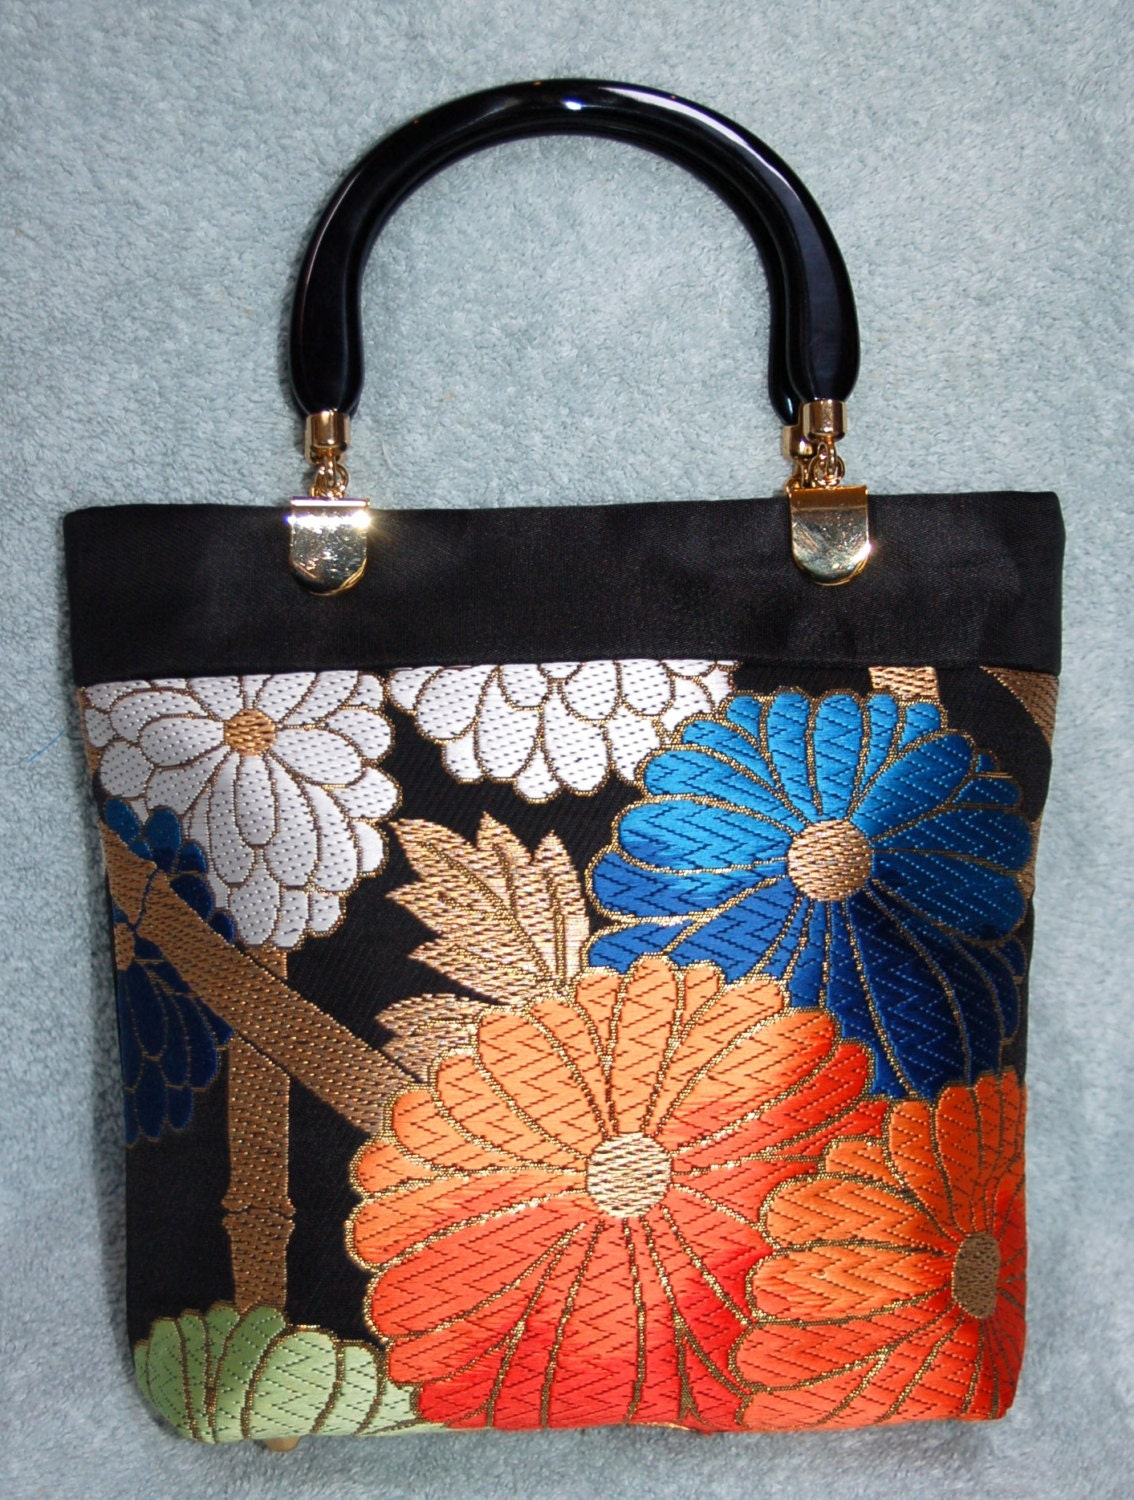 japanese obi handbag with kimono lining and acrylic handles. Black Bedroom Furniture Sets. Home Design Ideas